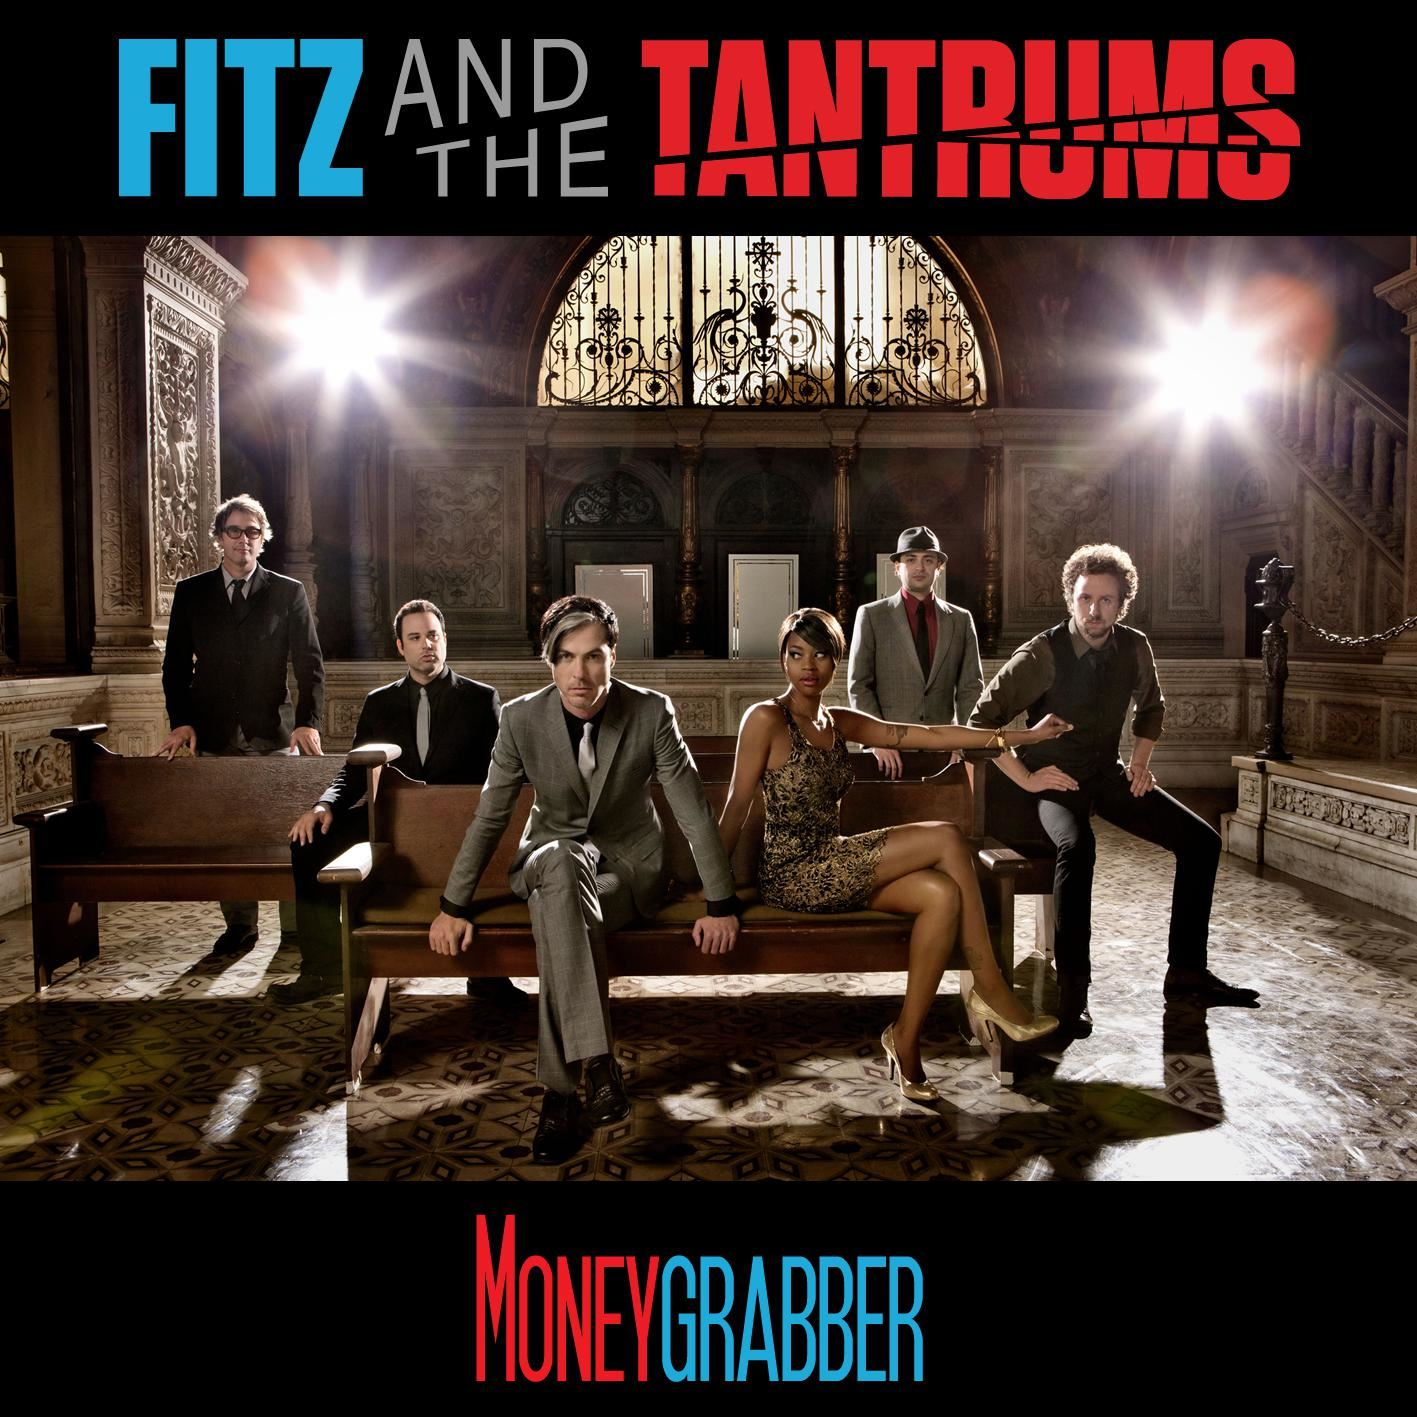 Fitz And The Tantrums - MoneyGrabber